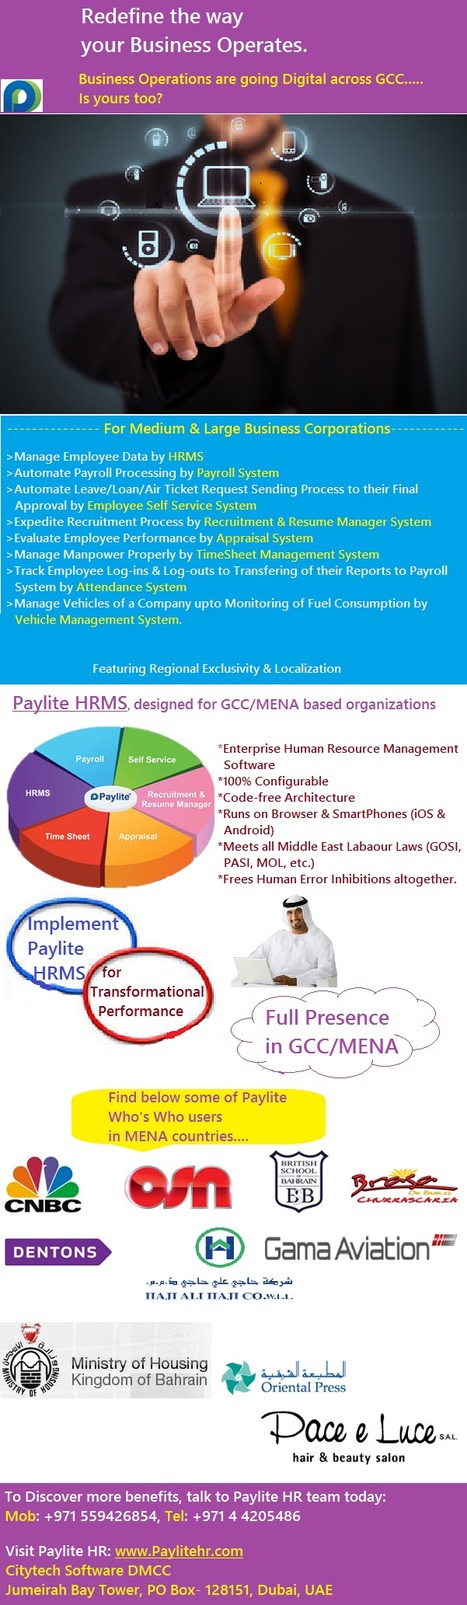 Redefine the way, your Business Operates. | software&technology | Scoop.it